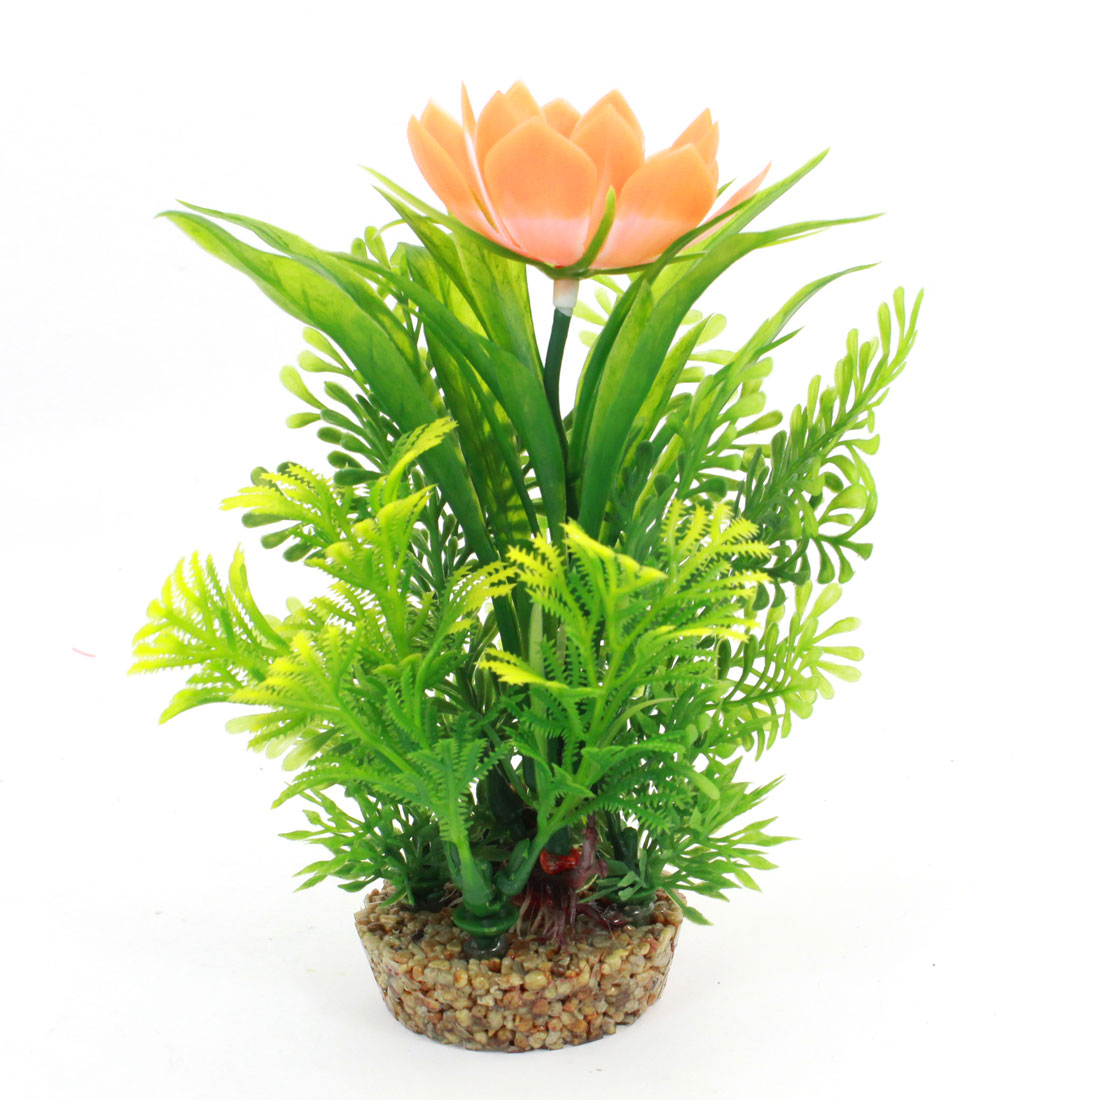 Fish Tank Manmade Orange Flower Detail Underwater Pot Plant Green 17cm Height